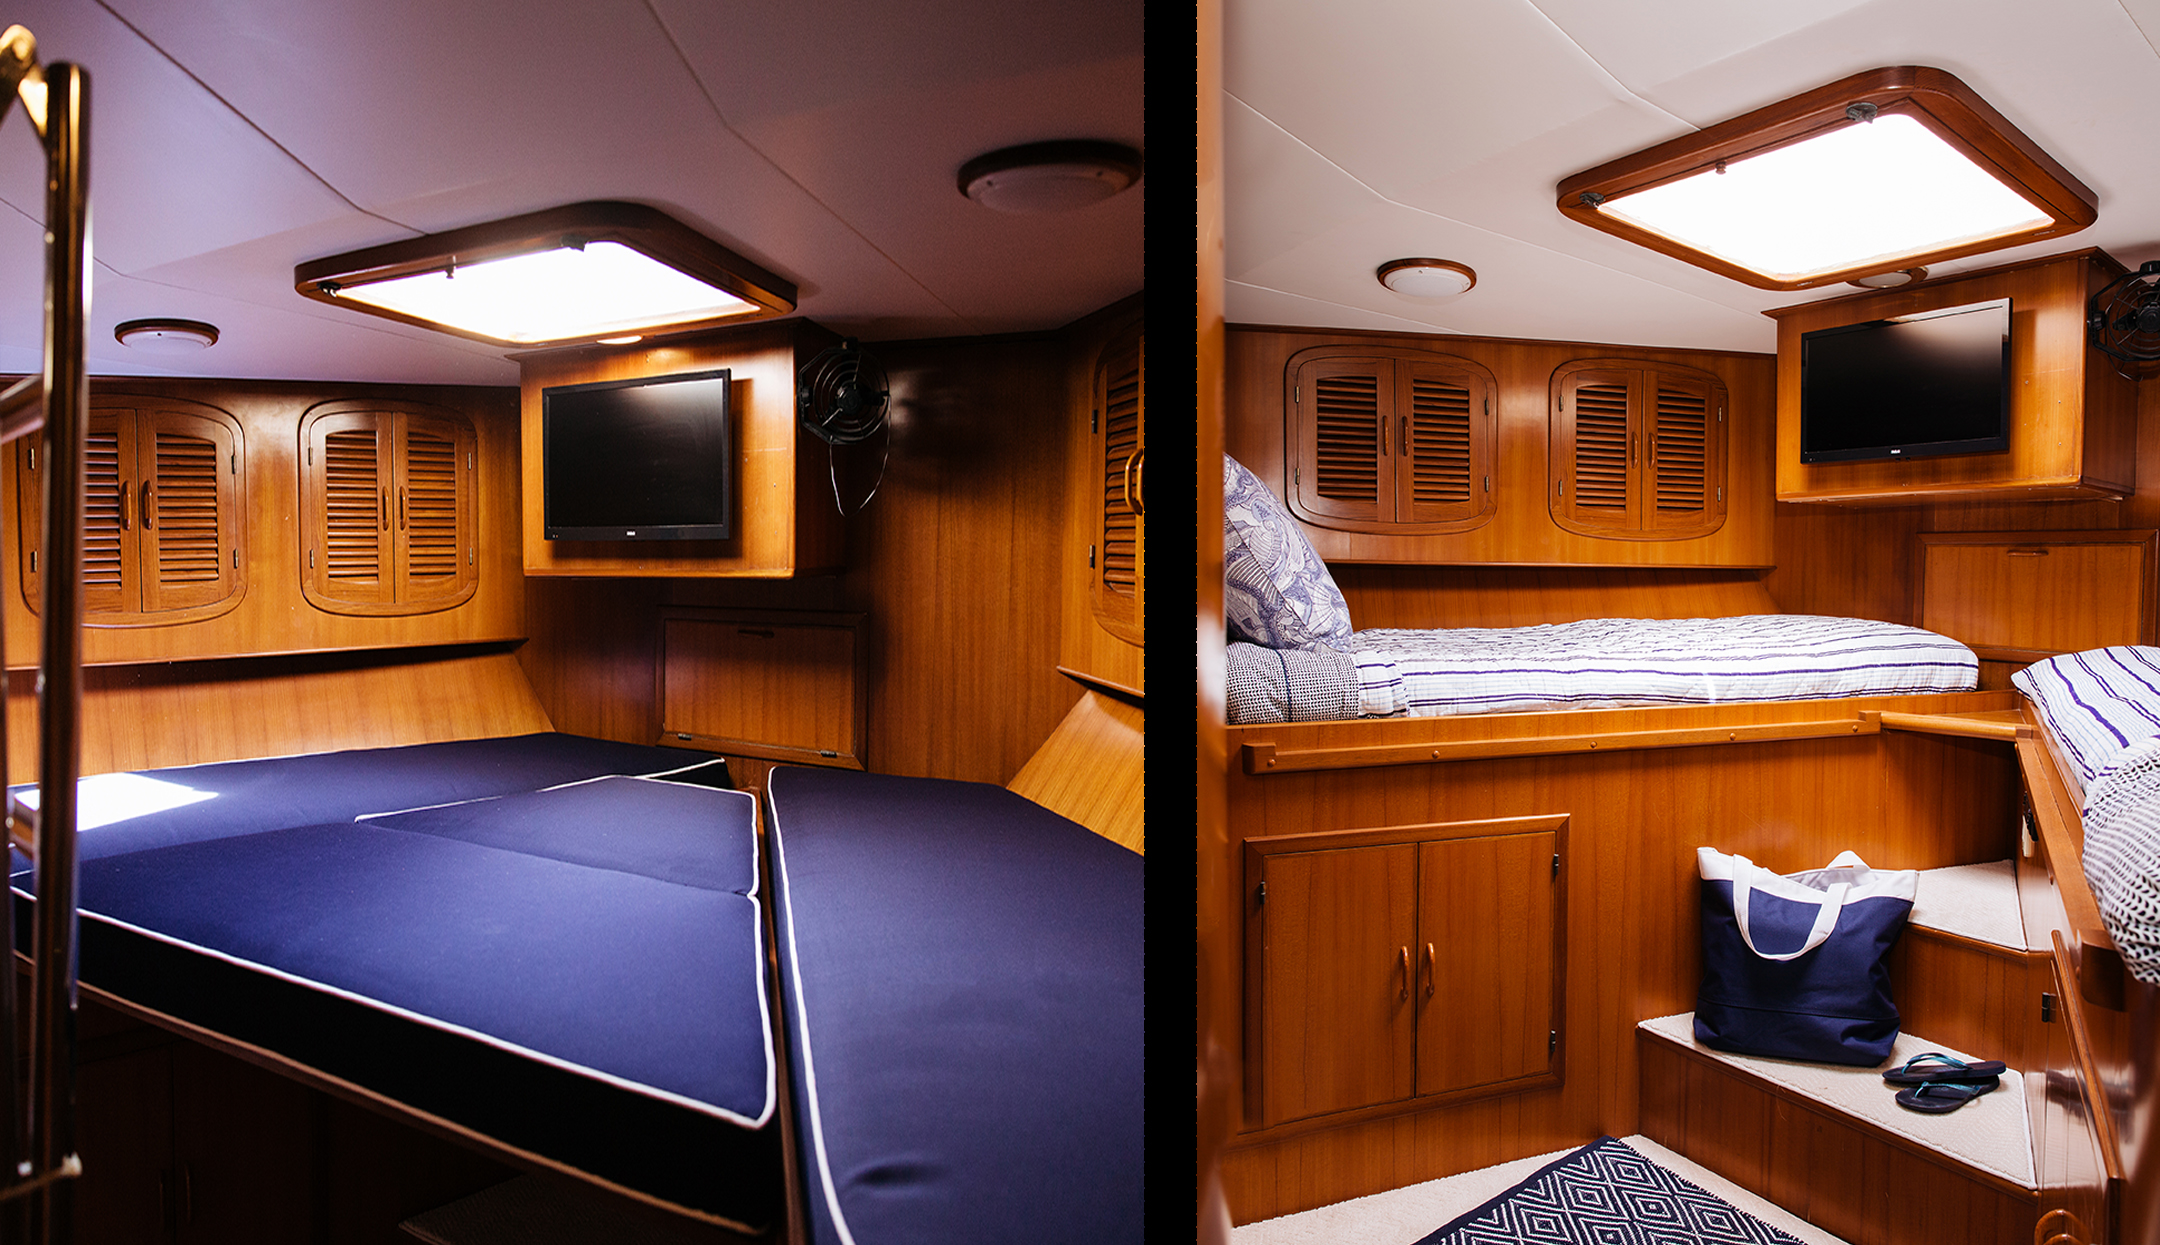 V-berth easily transforms from twin beds to king bed